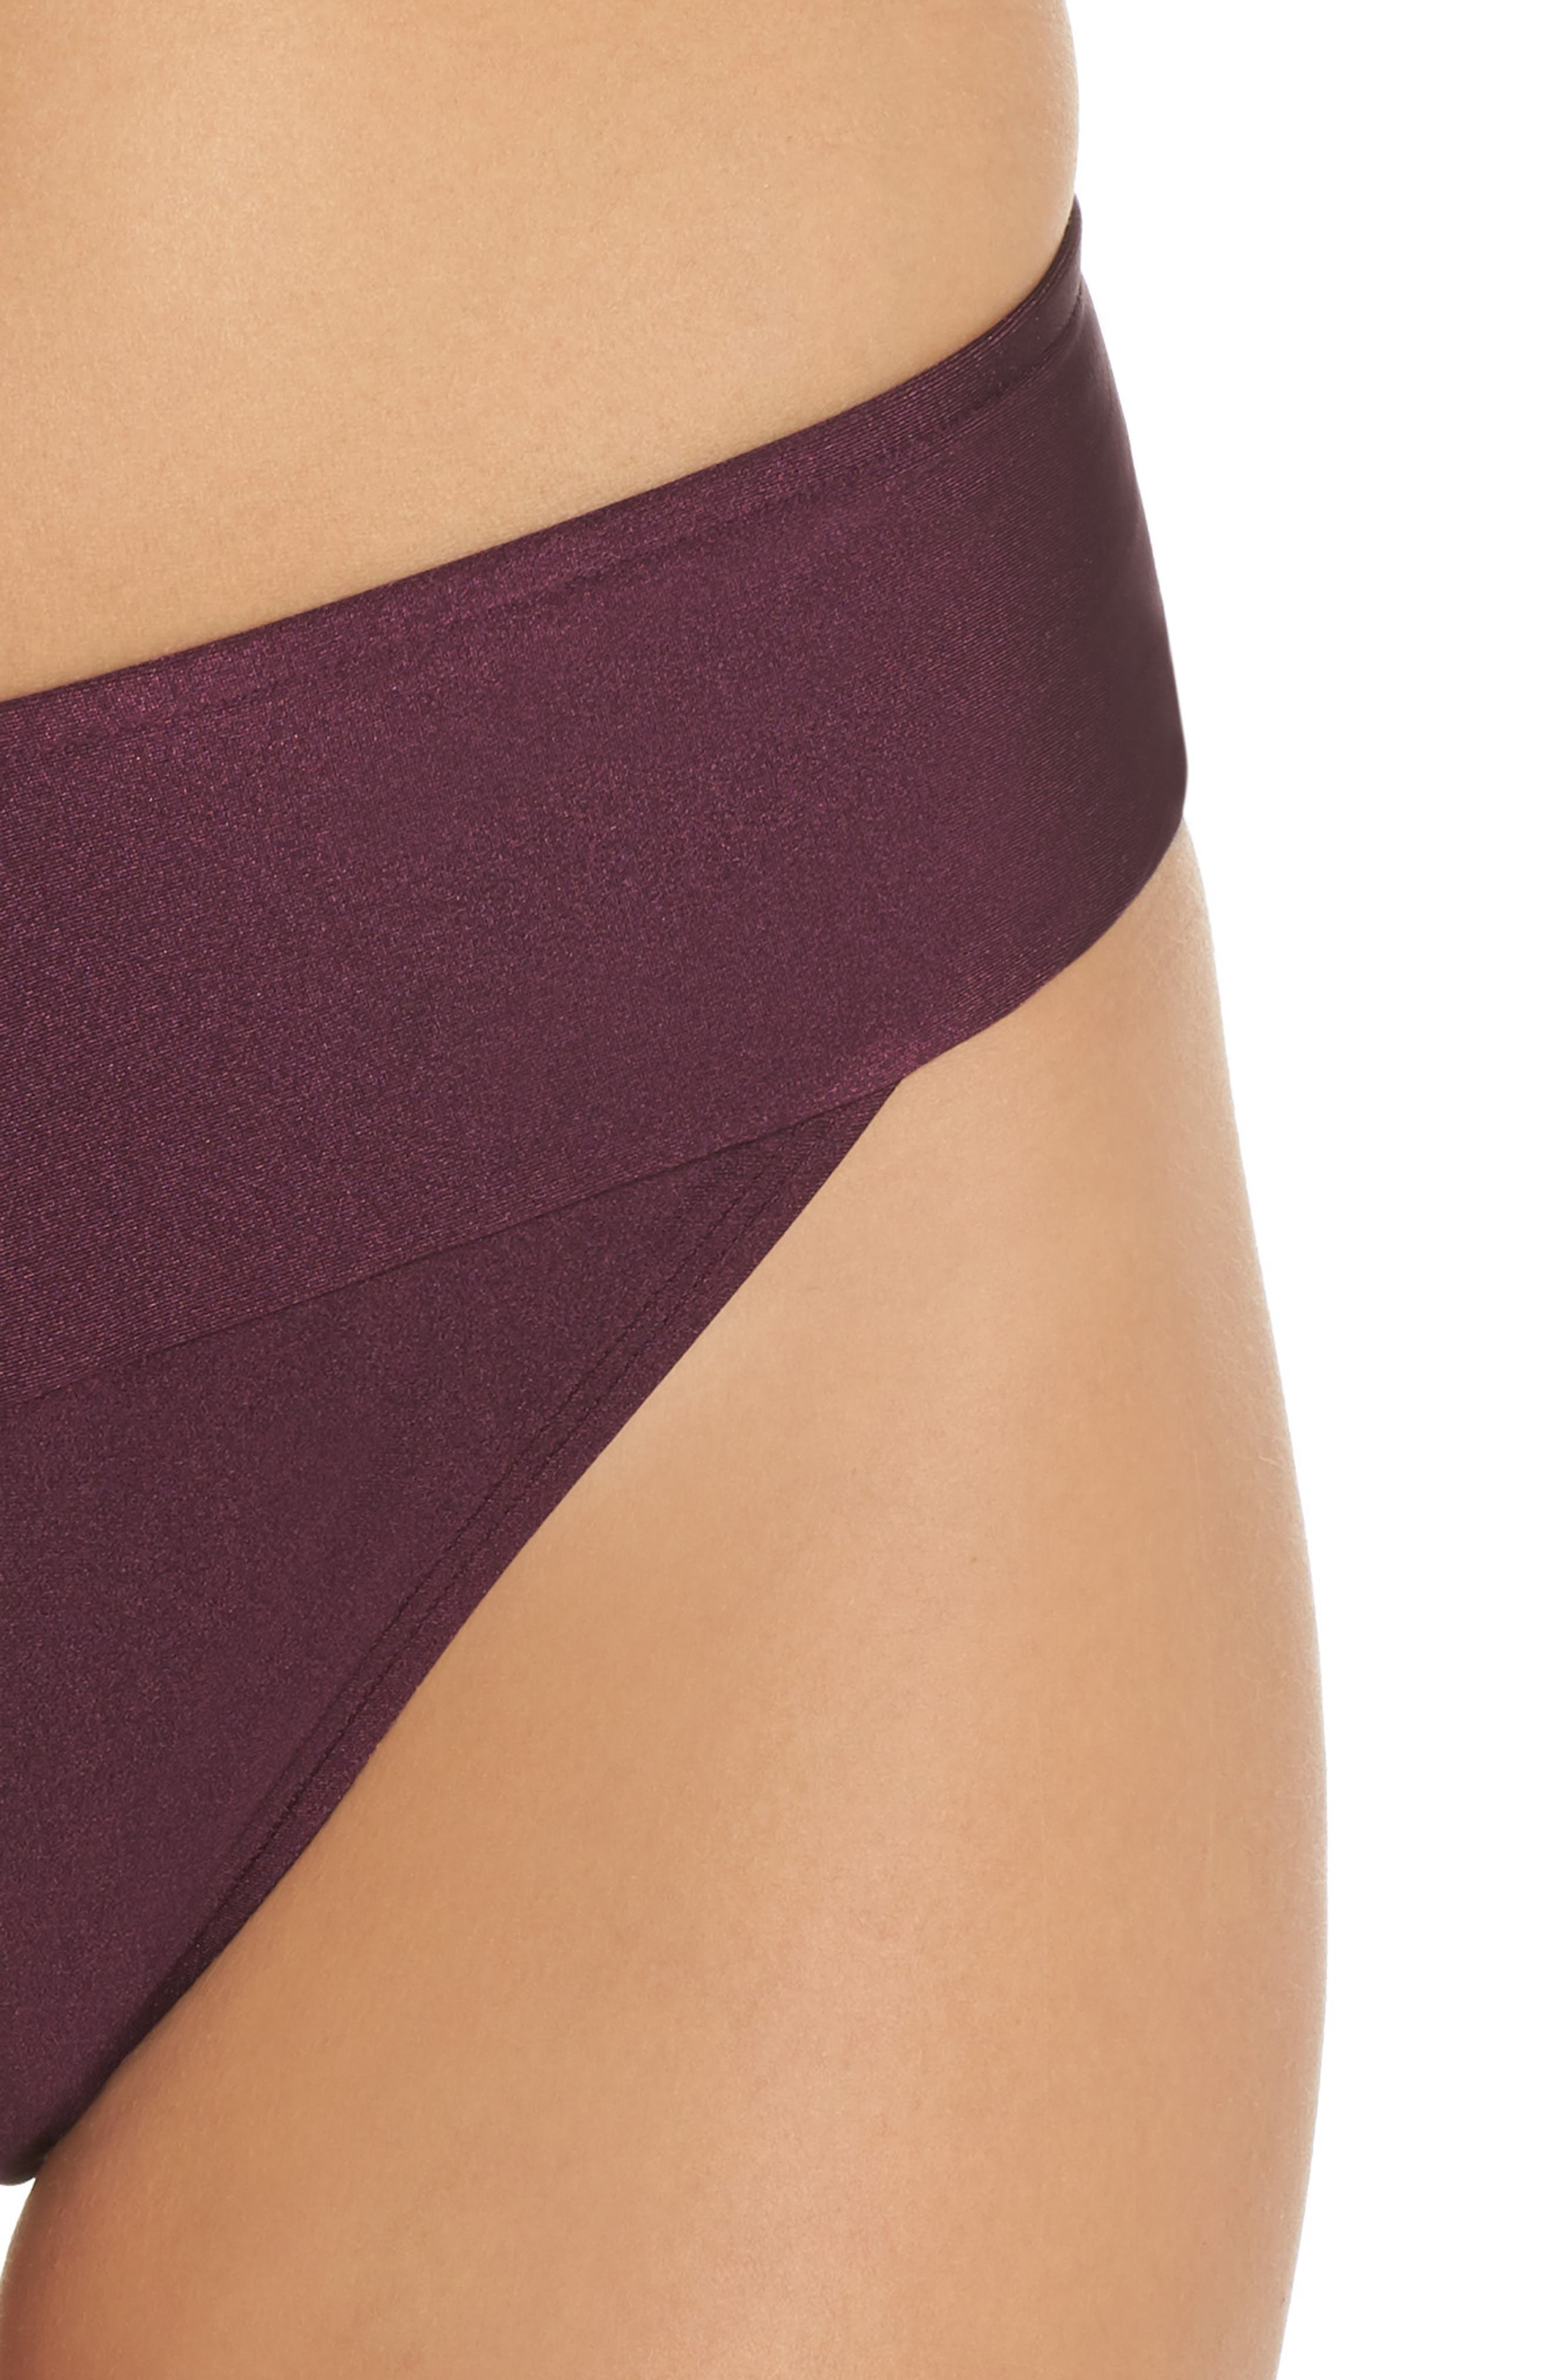 Ted Baker High Waisted Wrap Bikini Bottom,                             Alternate thumbnail 8, color,                             Deep Purple